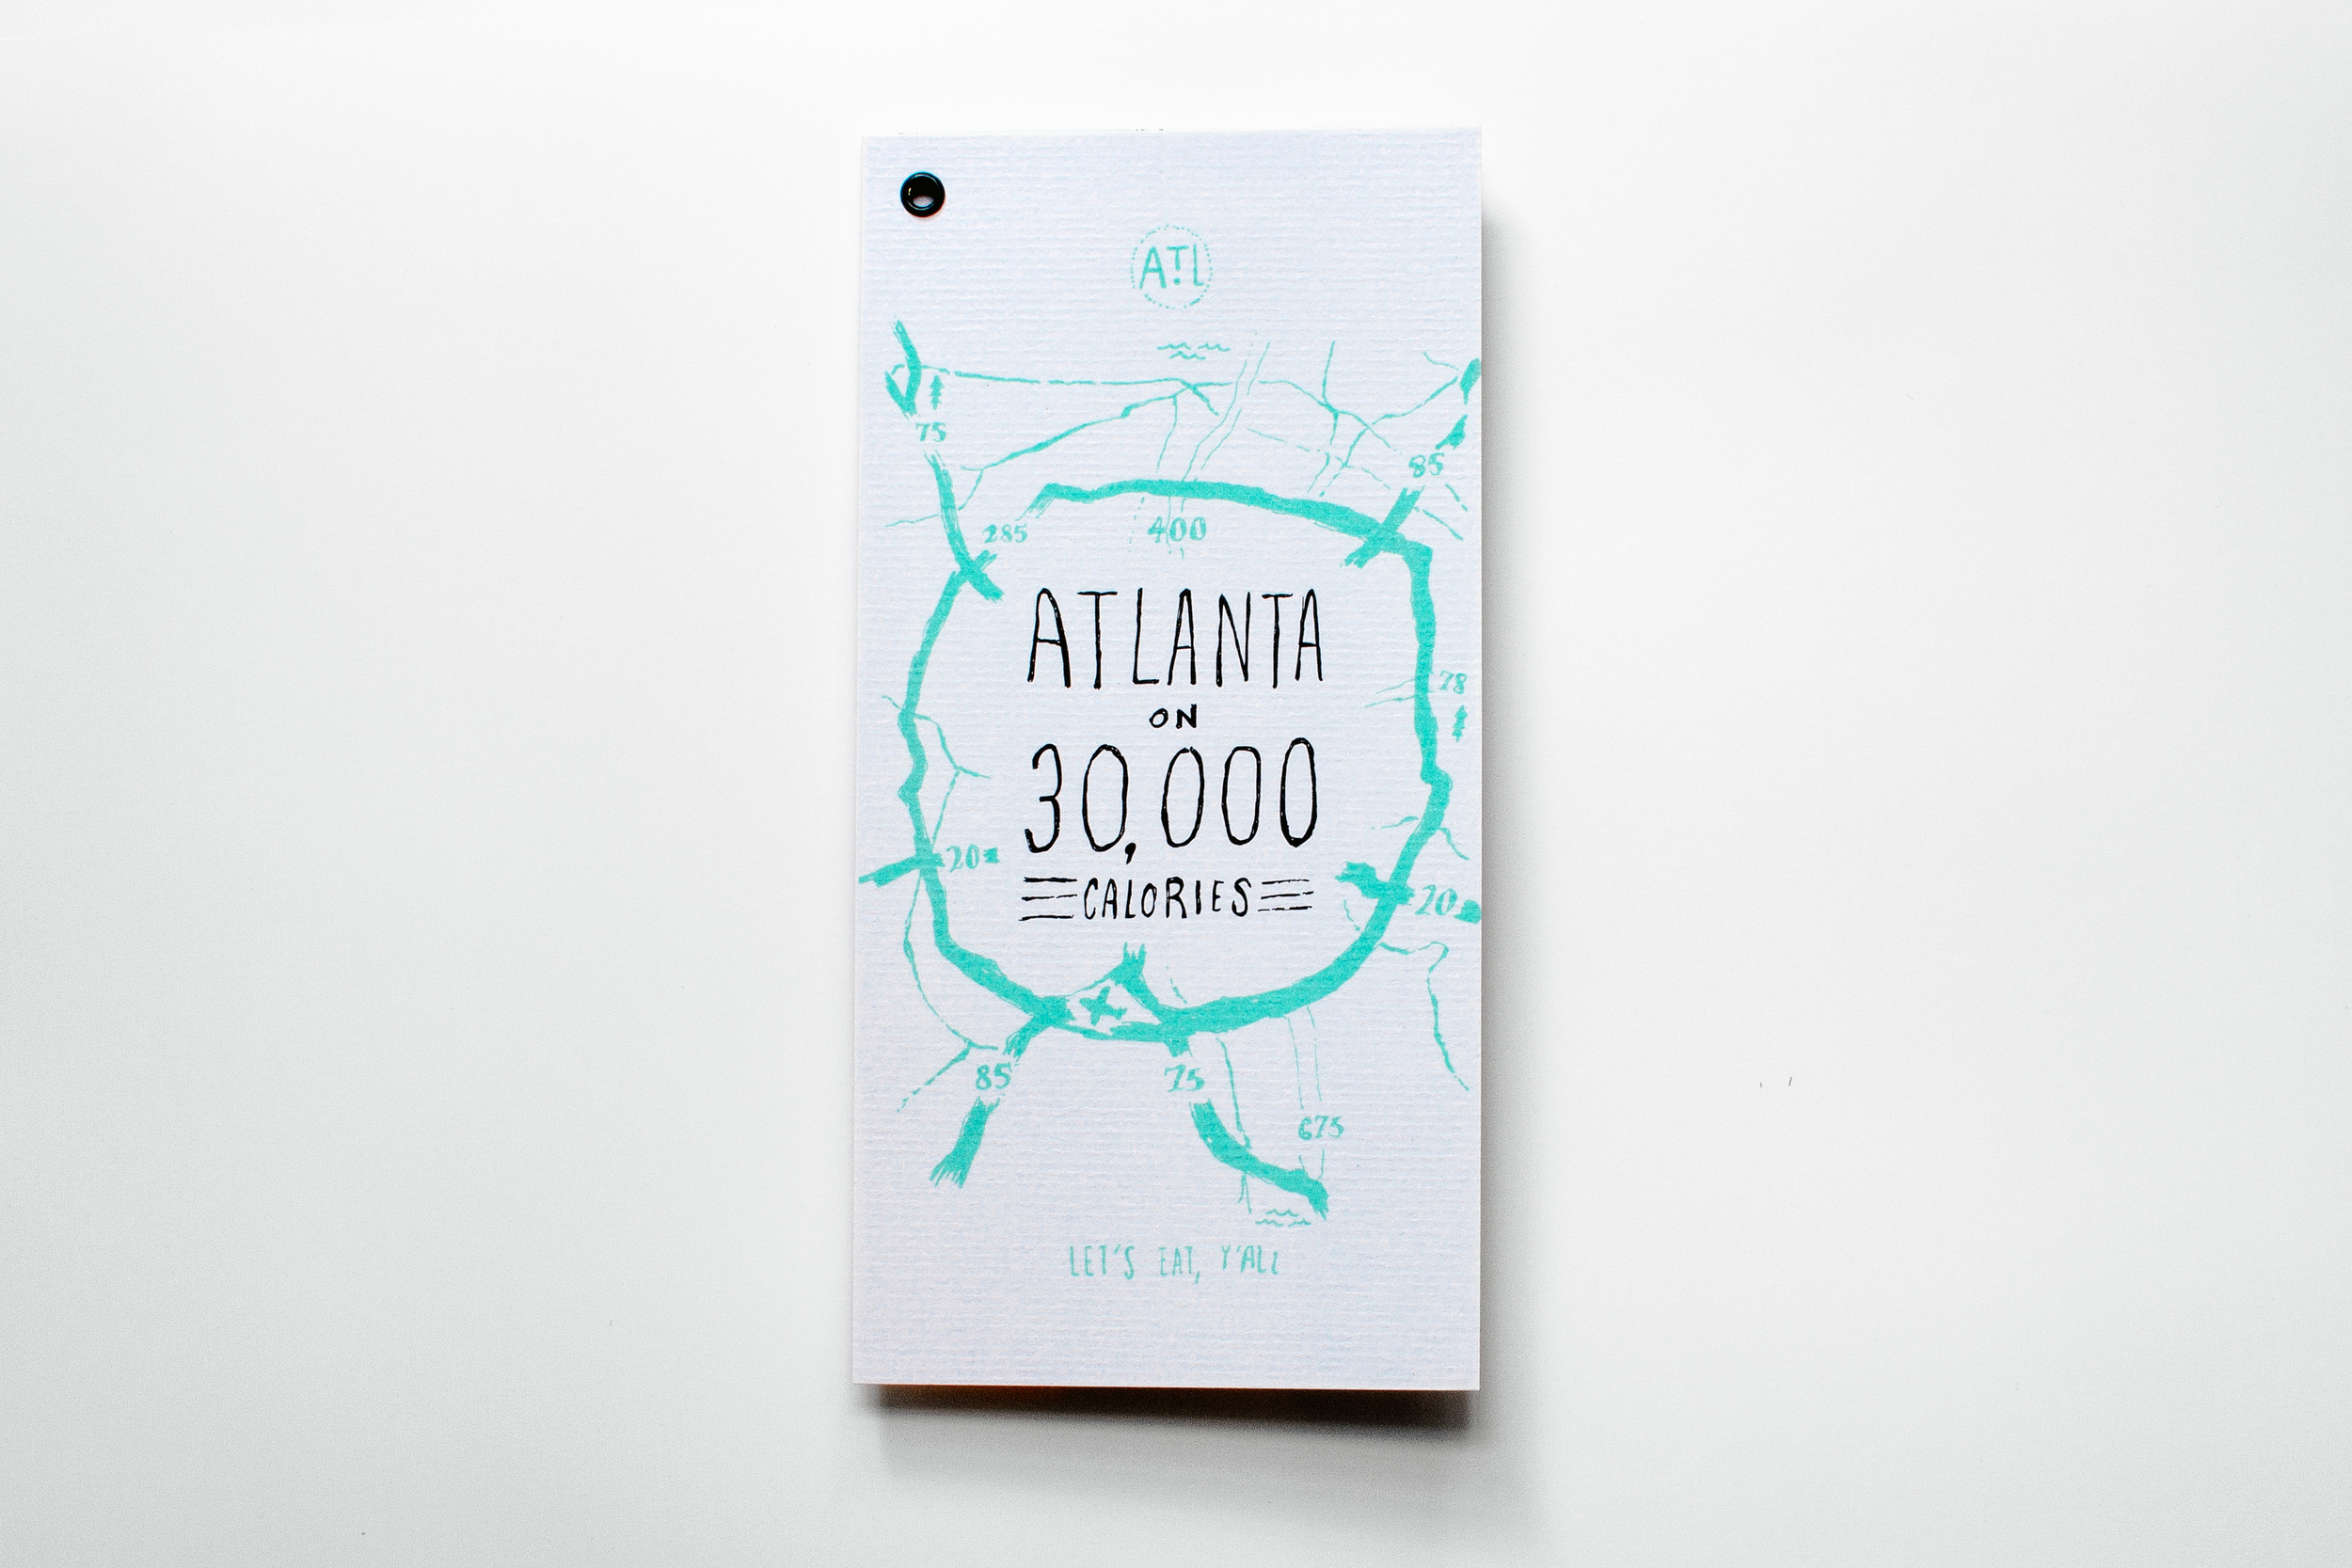 Atlanta on 30,000 calories illustrated map of food and restaurants in the city created by Russell Shaw for Neenah Paper Classic Future. The cover paper is CLASSIC Laid Cover Recycled 100 Bright White 80C.